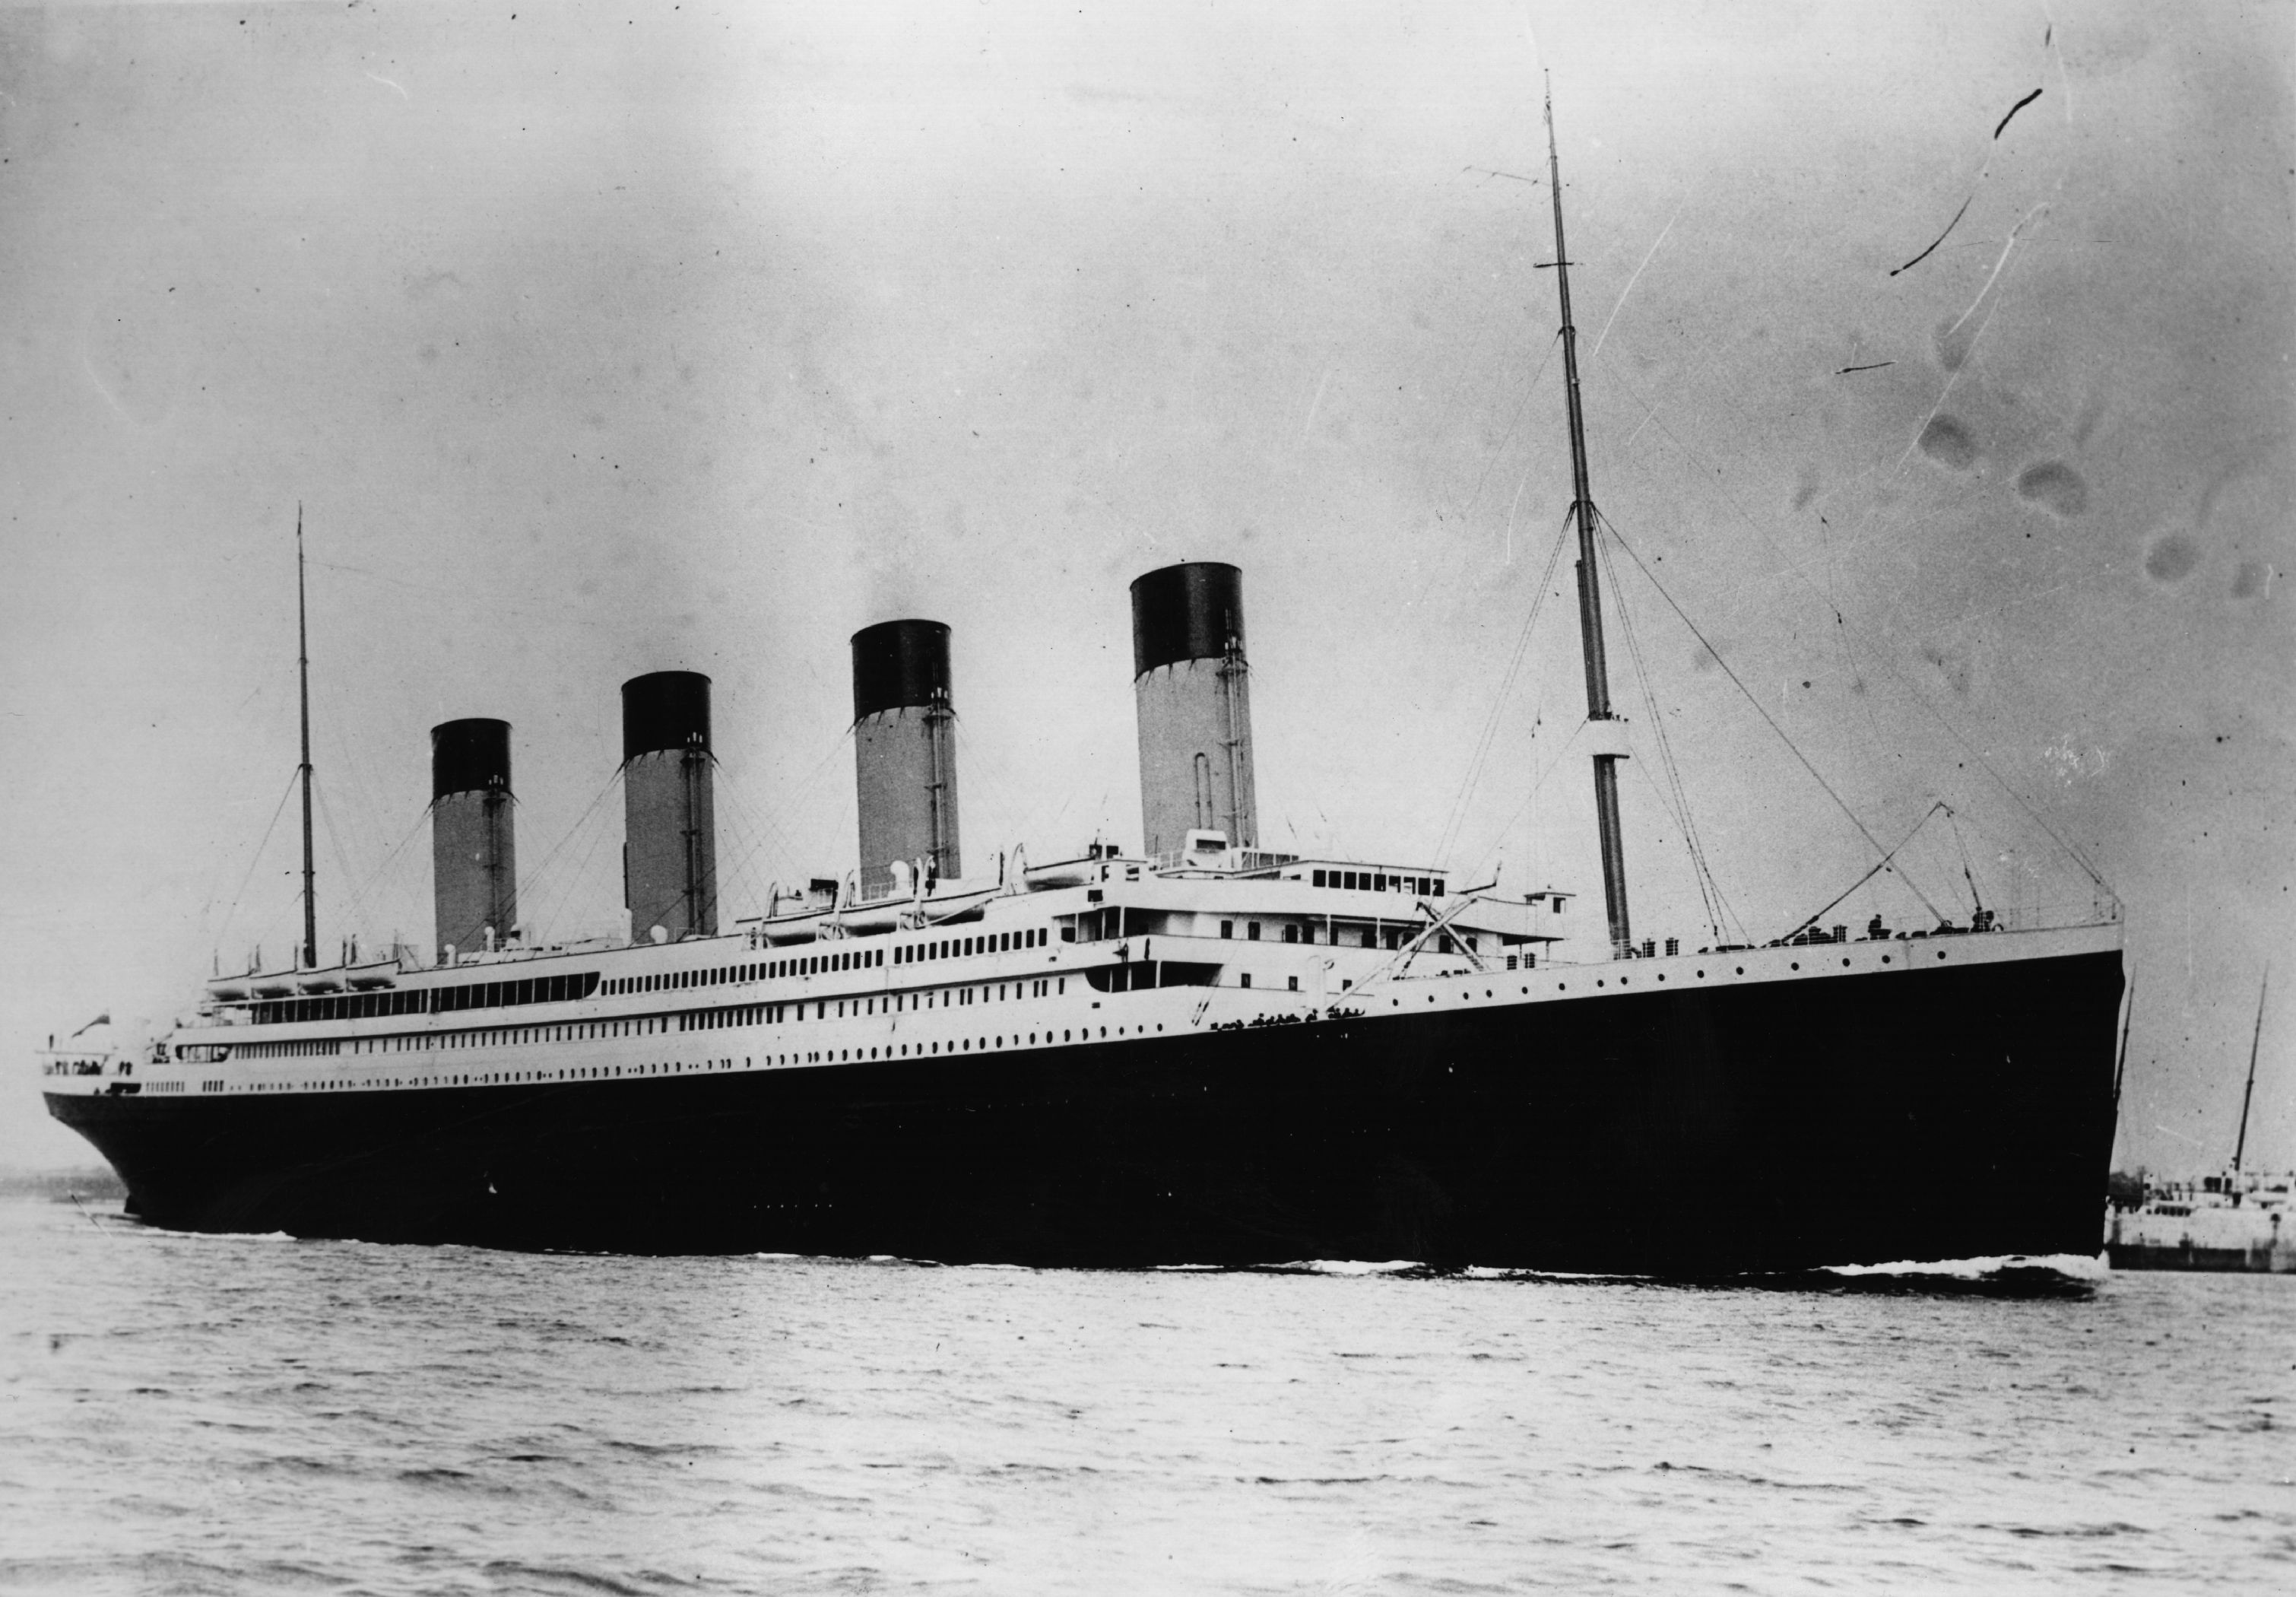 Pictures From The Titanic - Bing Images